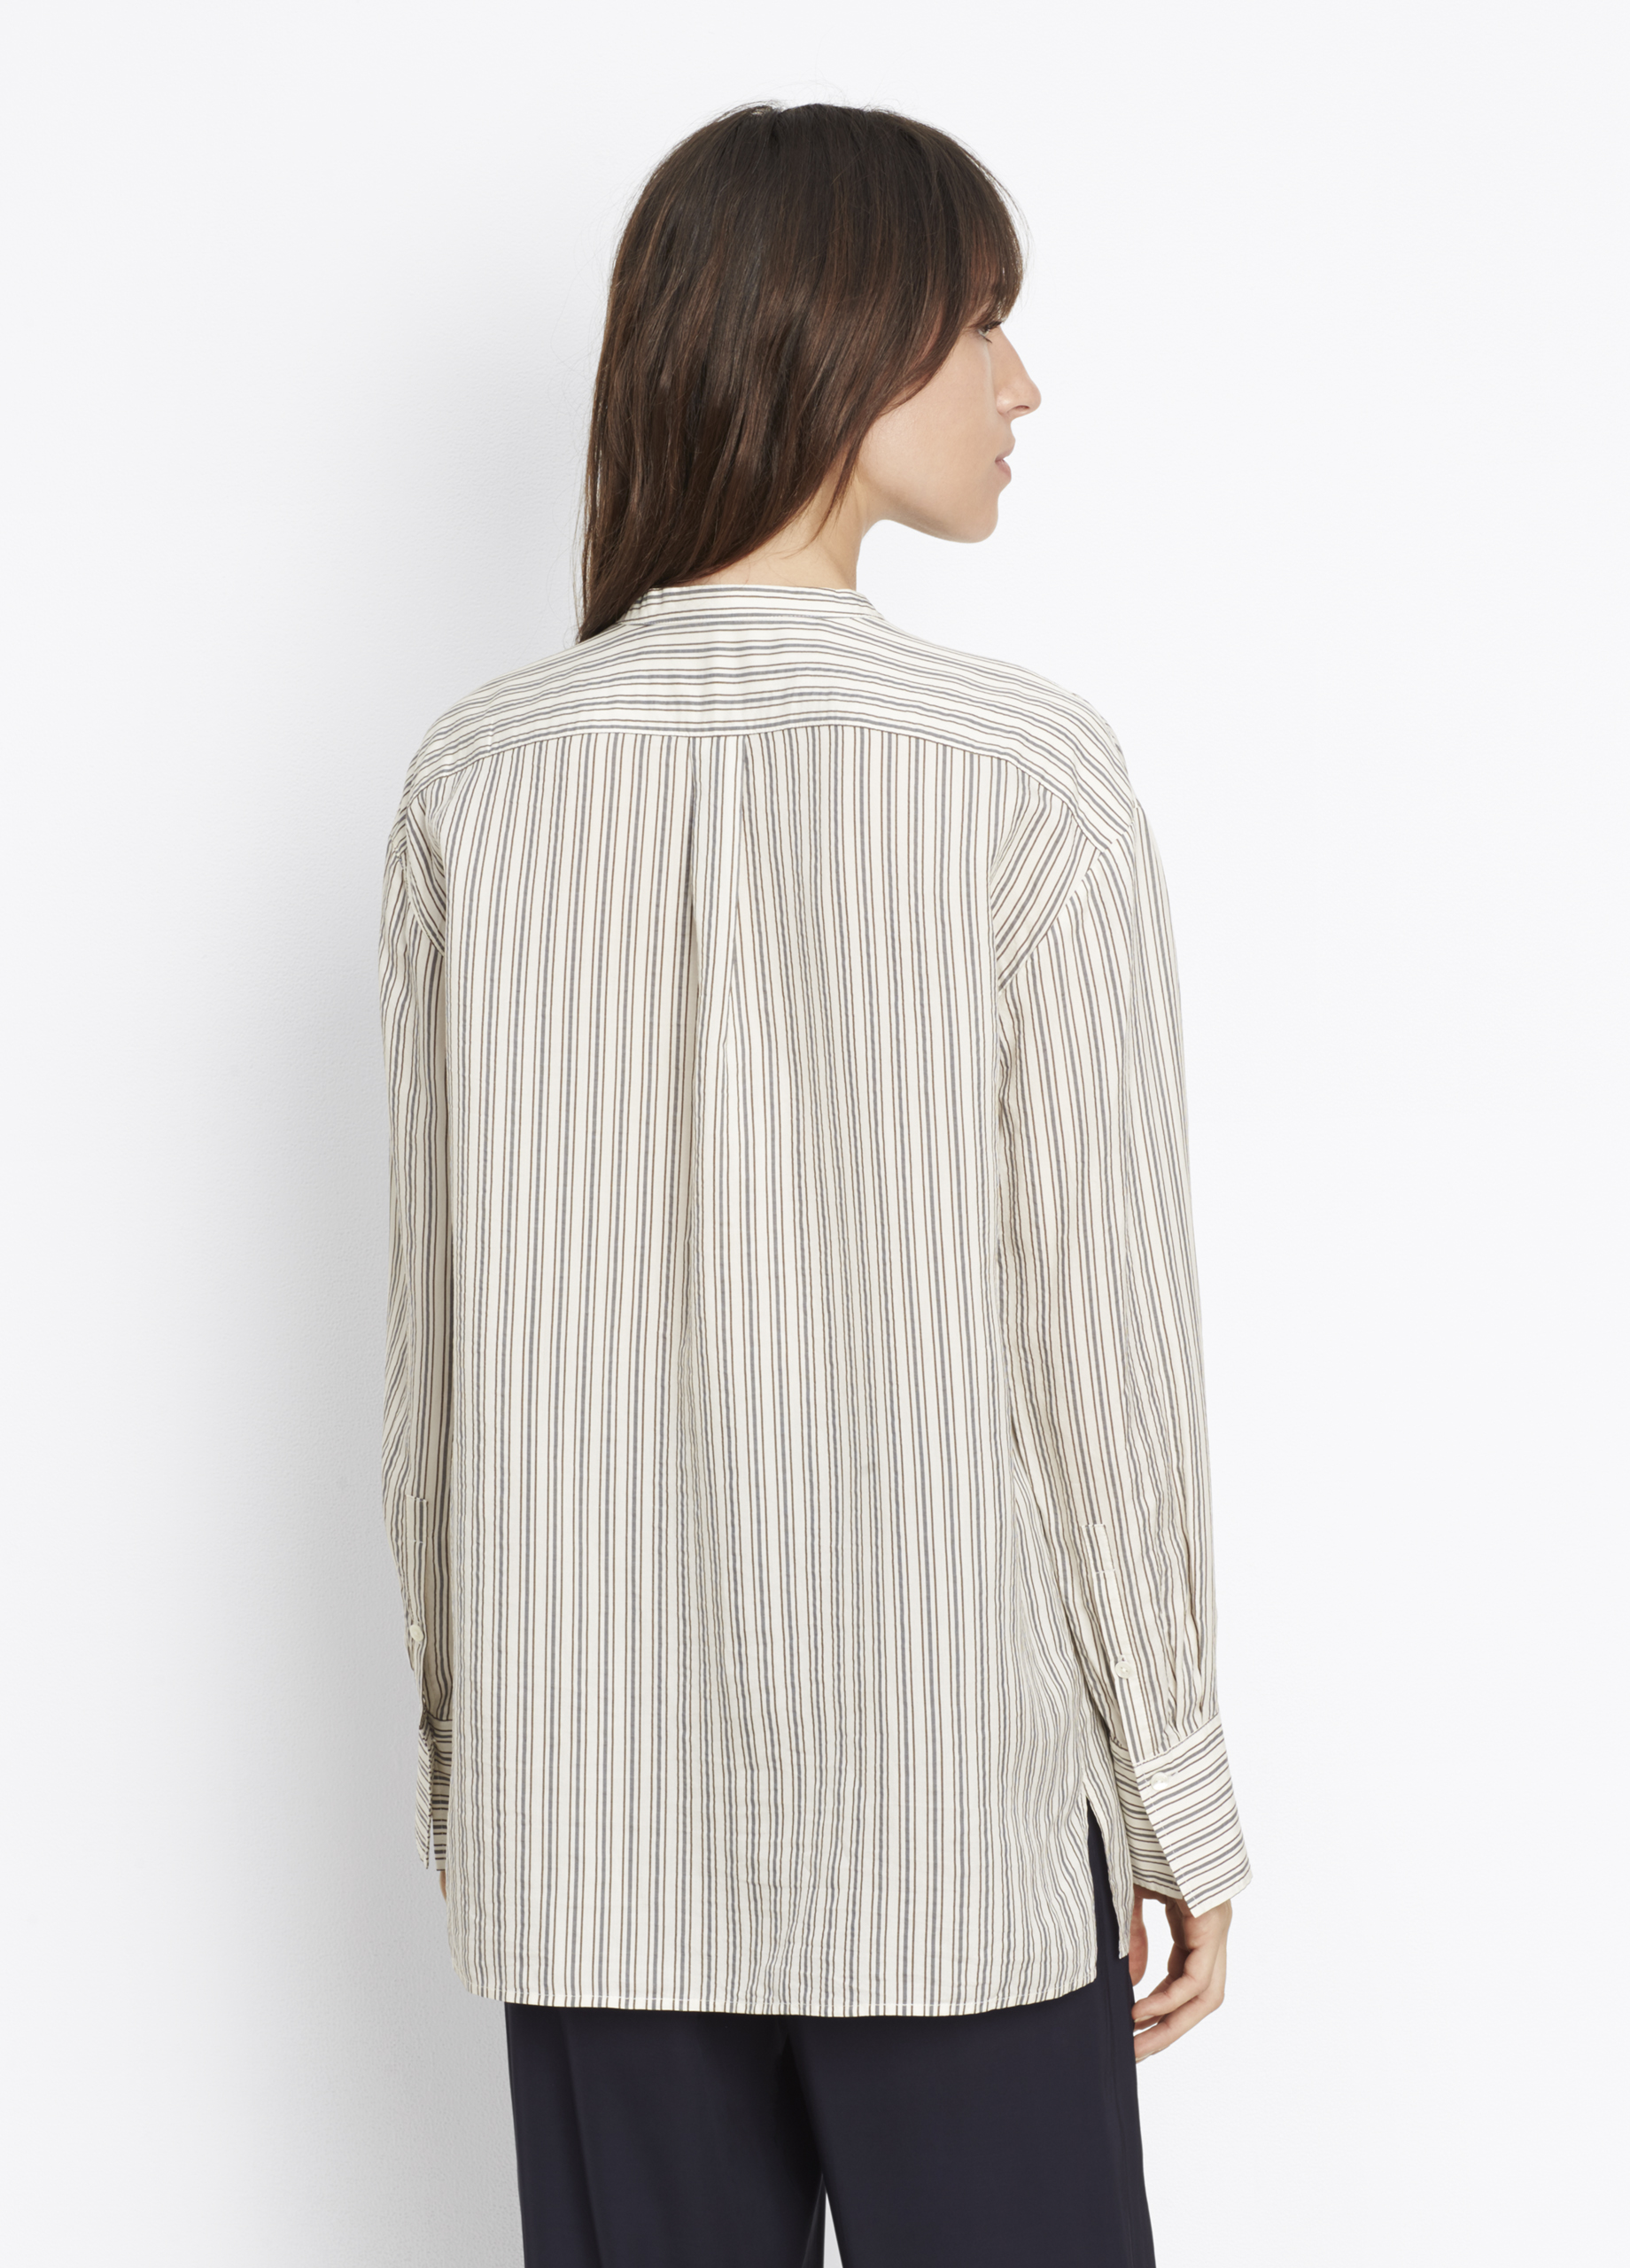 96a8119ce1ee4 Striped Tunic for Women